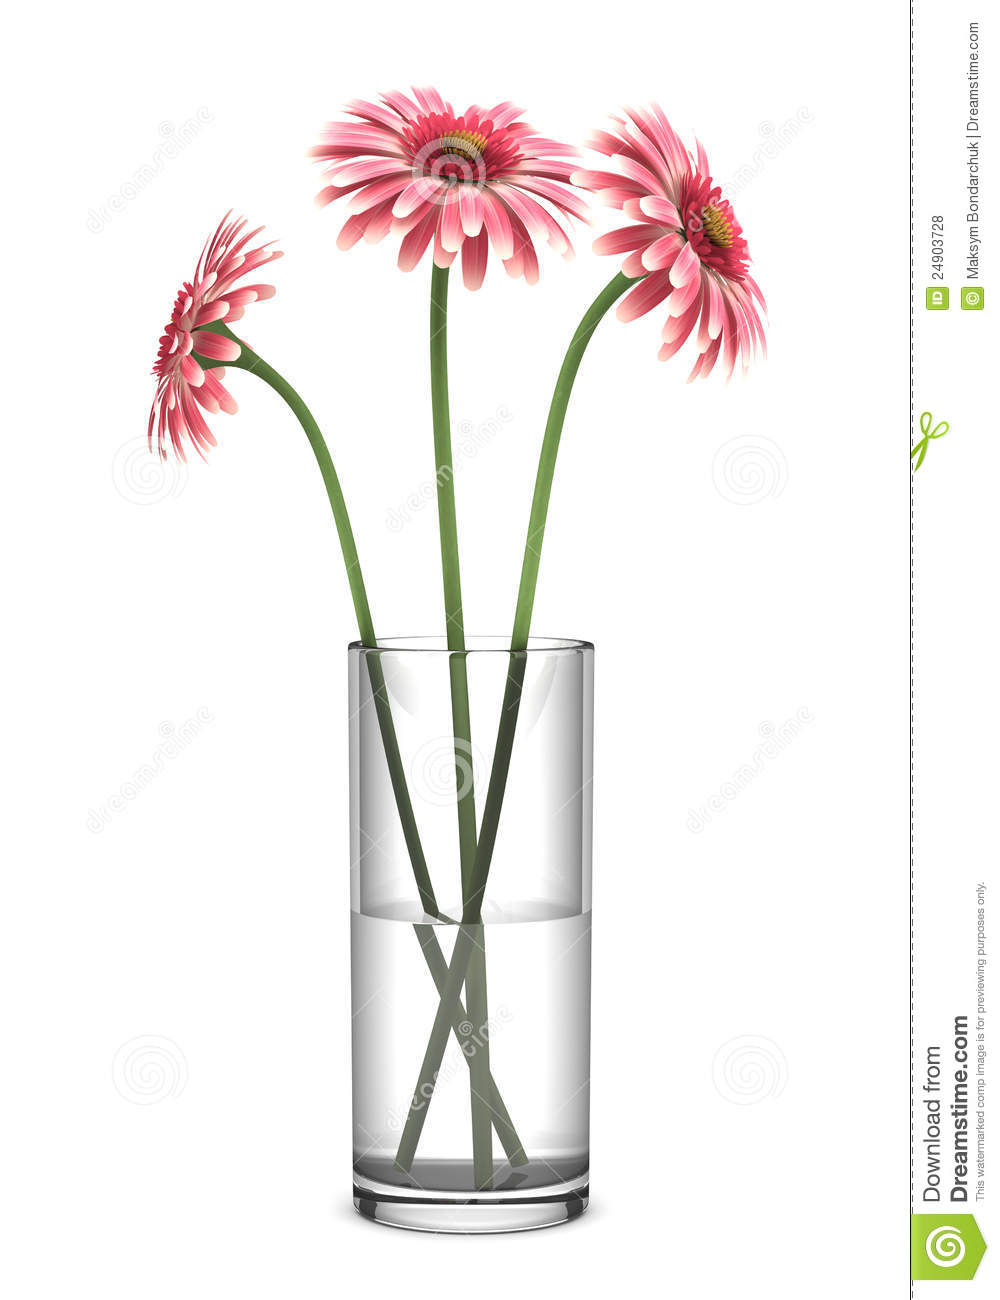 Pink gerbera daisies in vase isolated on white stock photo image royalty free stock photo reviewsmspy